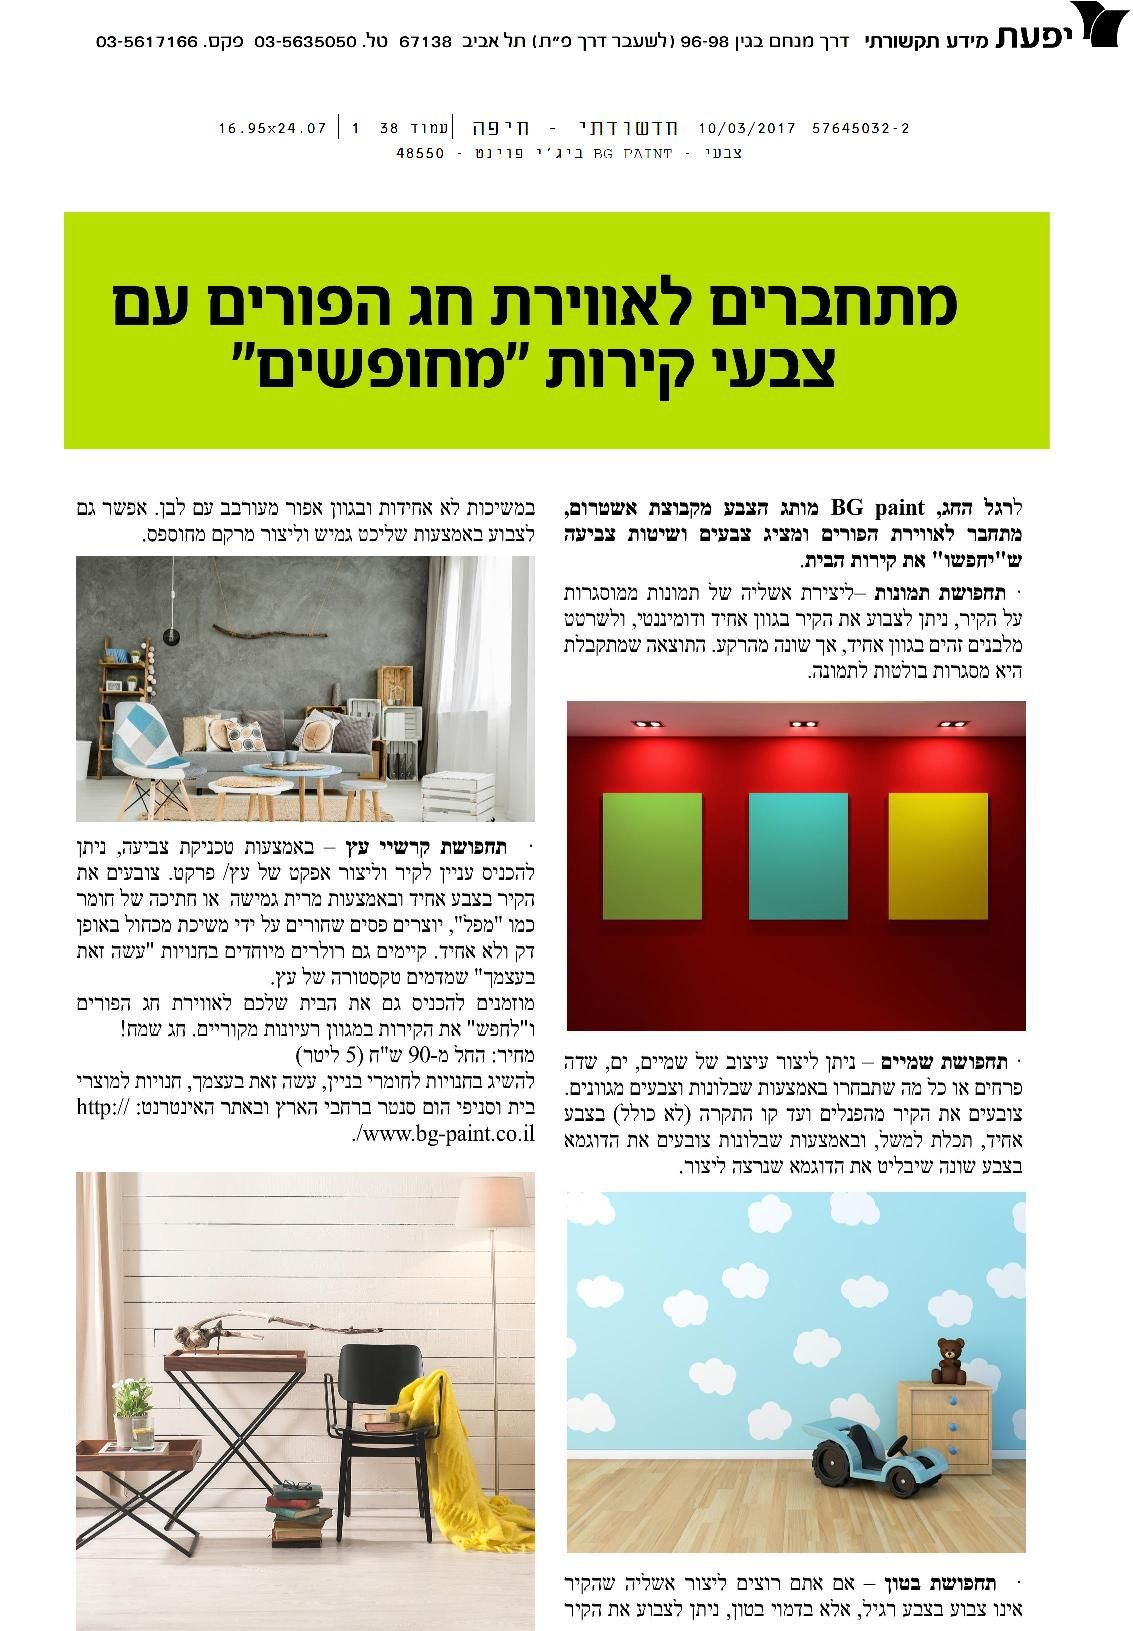 BG Paint Purim at Dati News